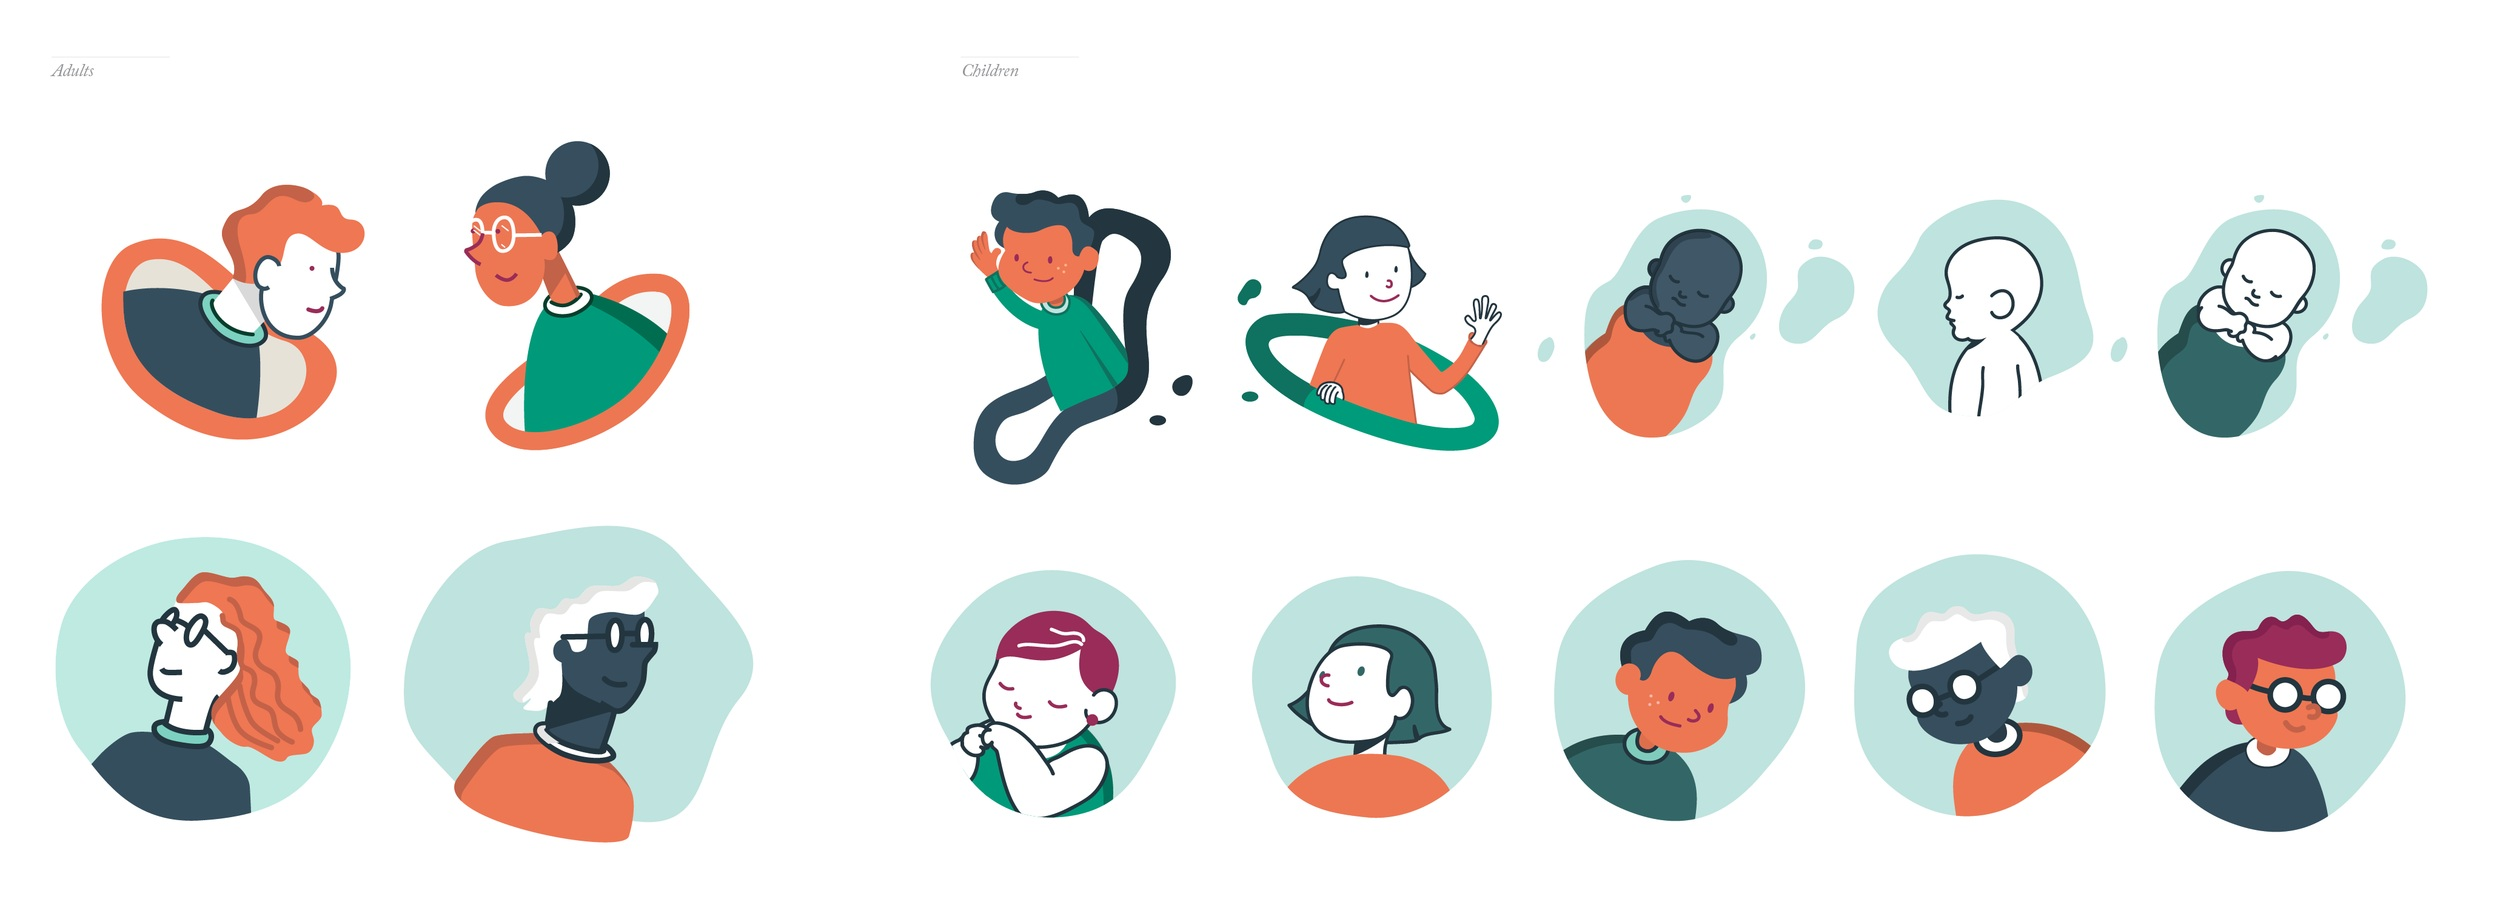 It was essential for us to create design guidelines to keep consistency throughout all the designers and animators involved in this project. Patients will most always be infants or kids, please double check with Theresa so she can get approval from client. Colors of characters may vary as long as they are within the given color pallet.